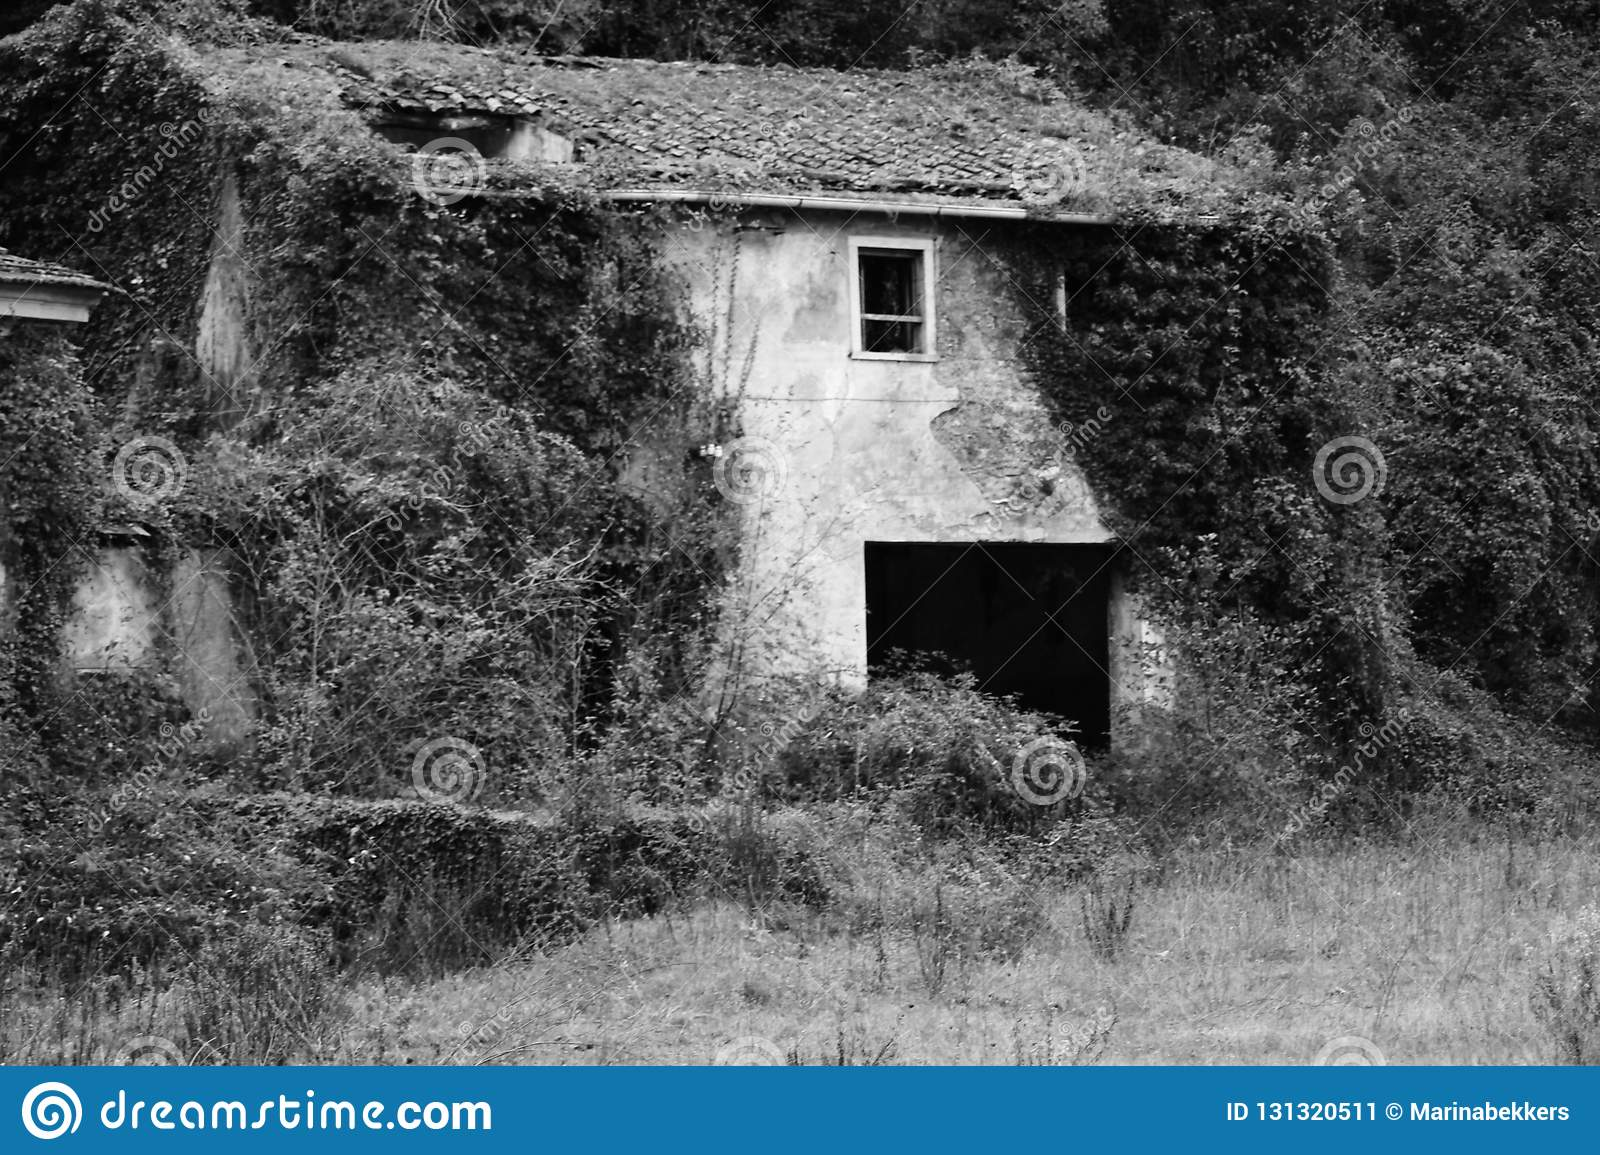 The old abandoned house in the mountains